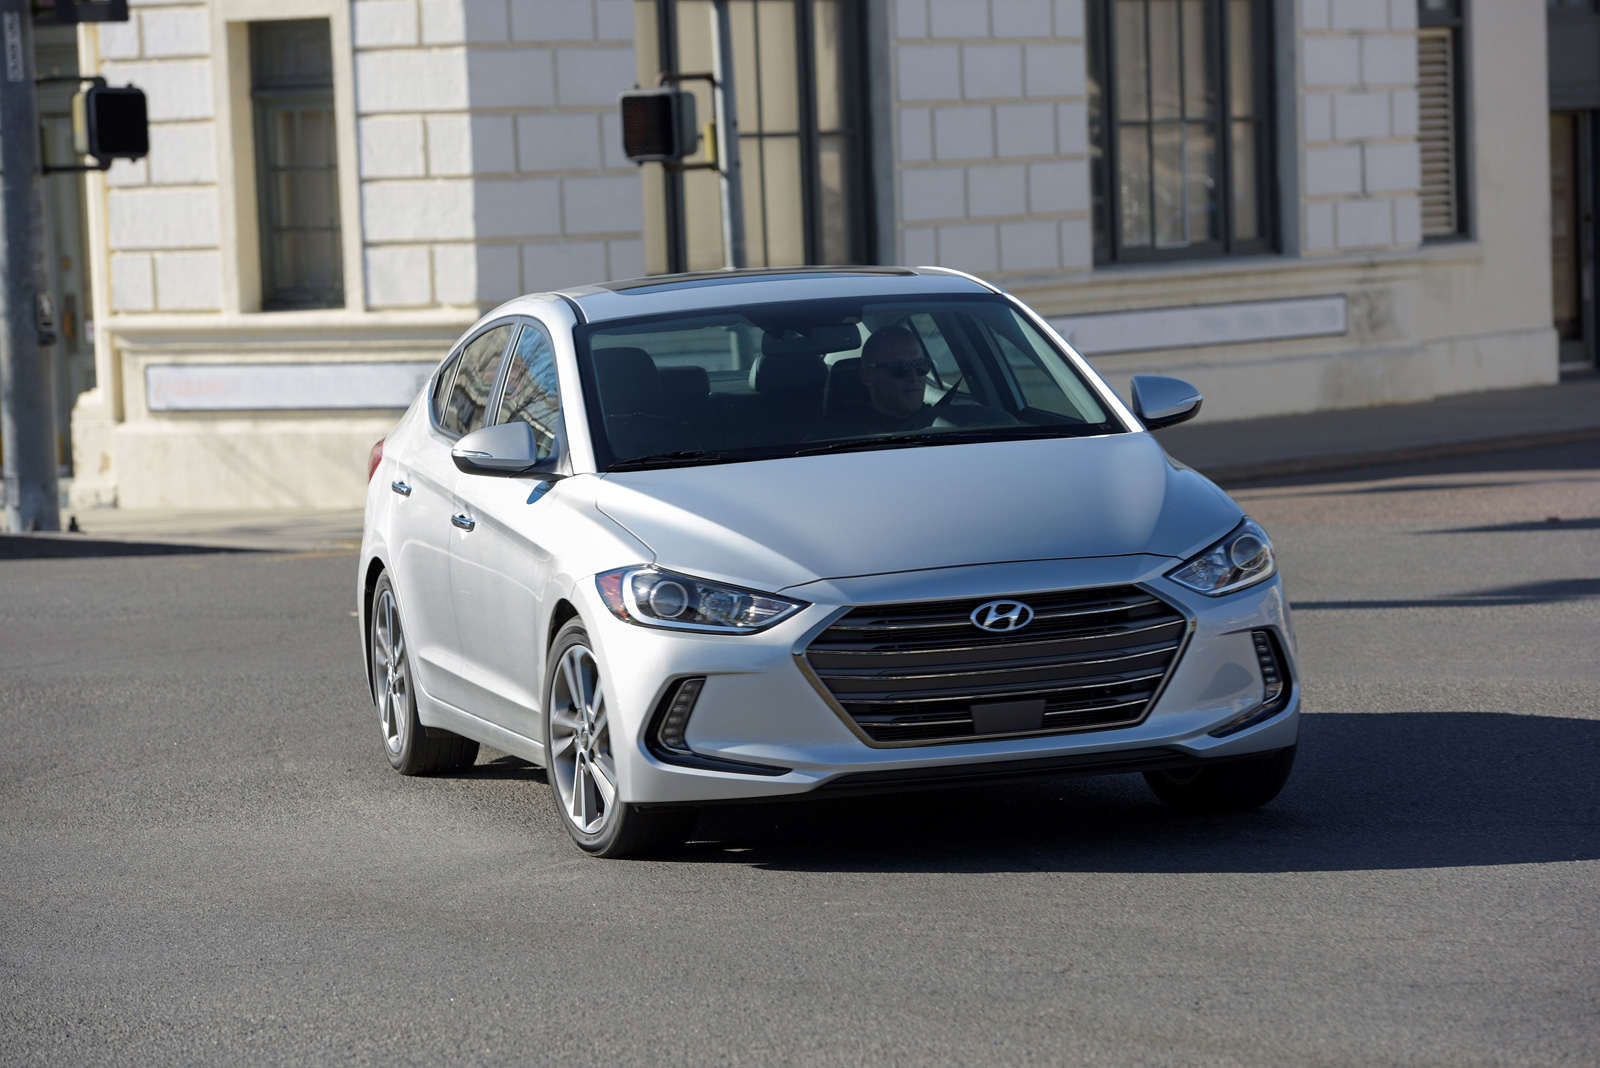 2018 hyundai elantra sel. interesting elantra 2018 elantra sedan with hyundai elantra sel